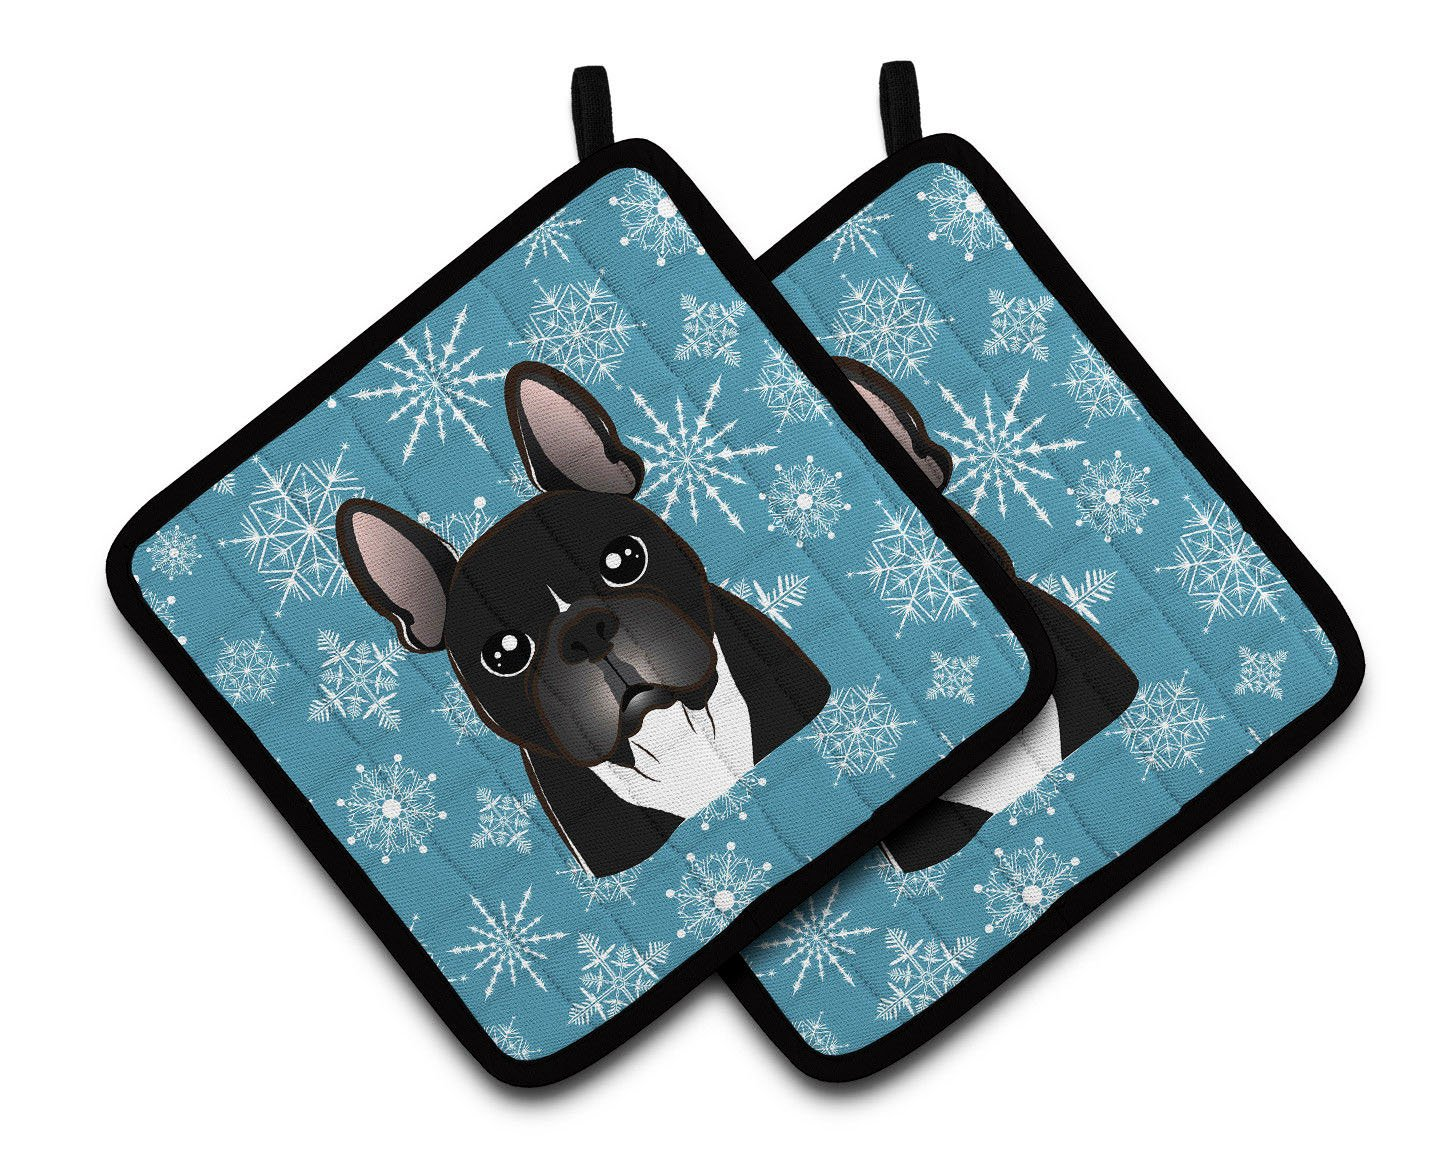 "Custom & Durable {7.5"" X 7.5'' Inch Each} 2 Set Pack Mid Size ""Non-Slip"" Pot Holders Made of Cotton for Carrying Hot Dishes w/ French Bulldog Winter Snowflake Style [White, Blue, & Black]"